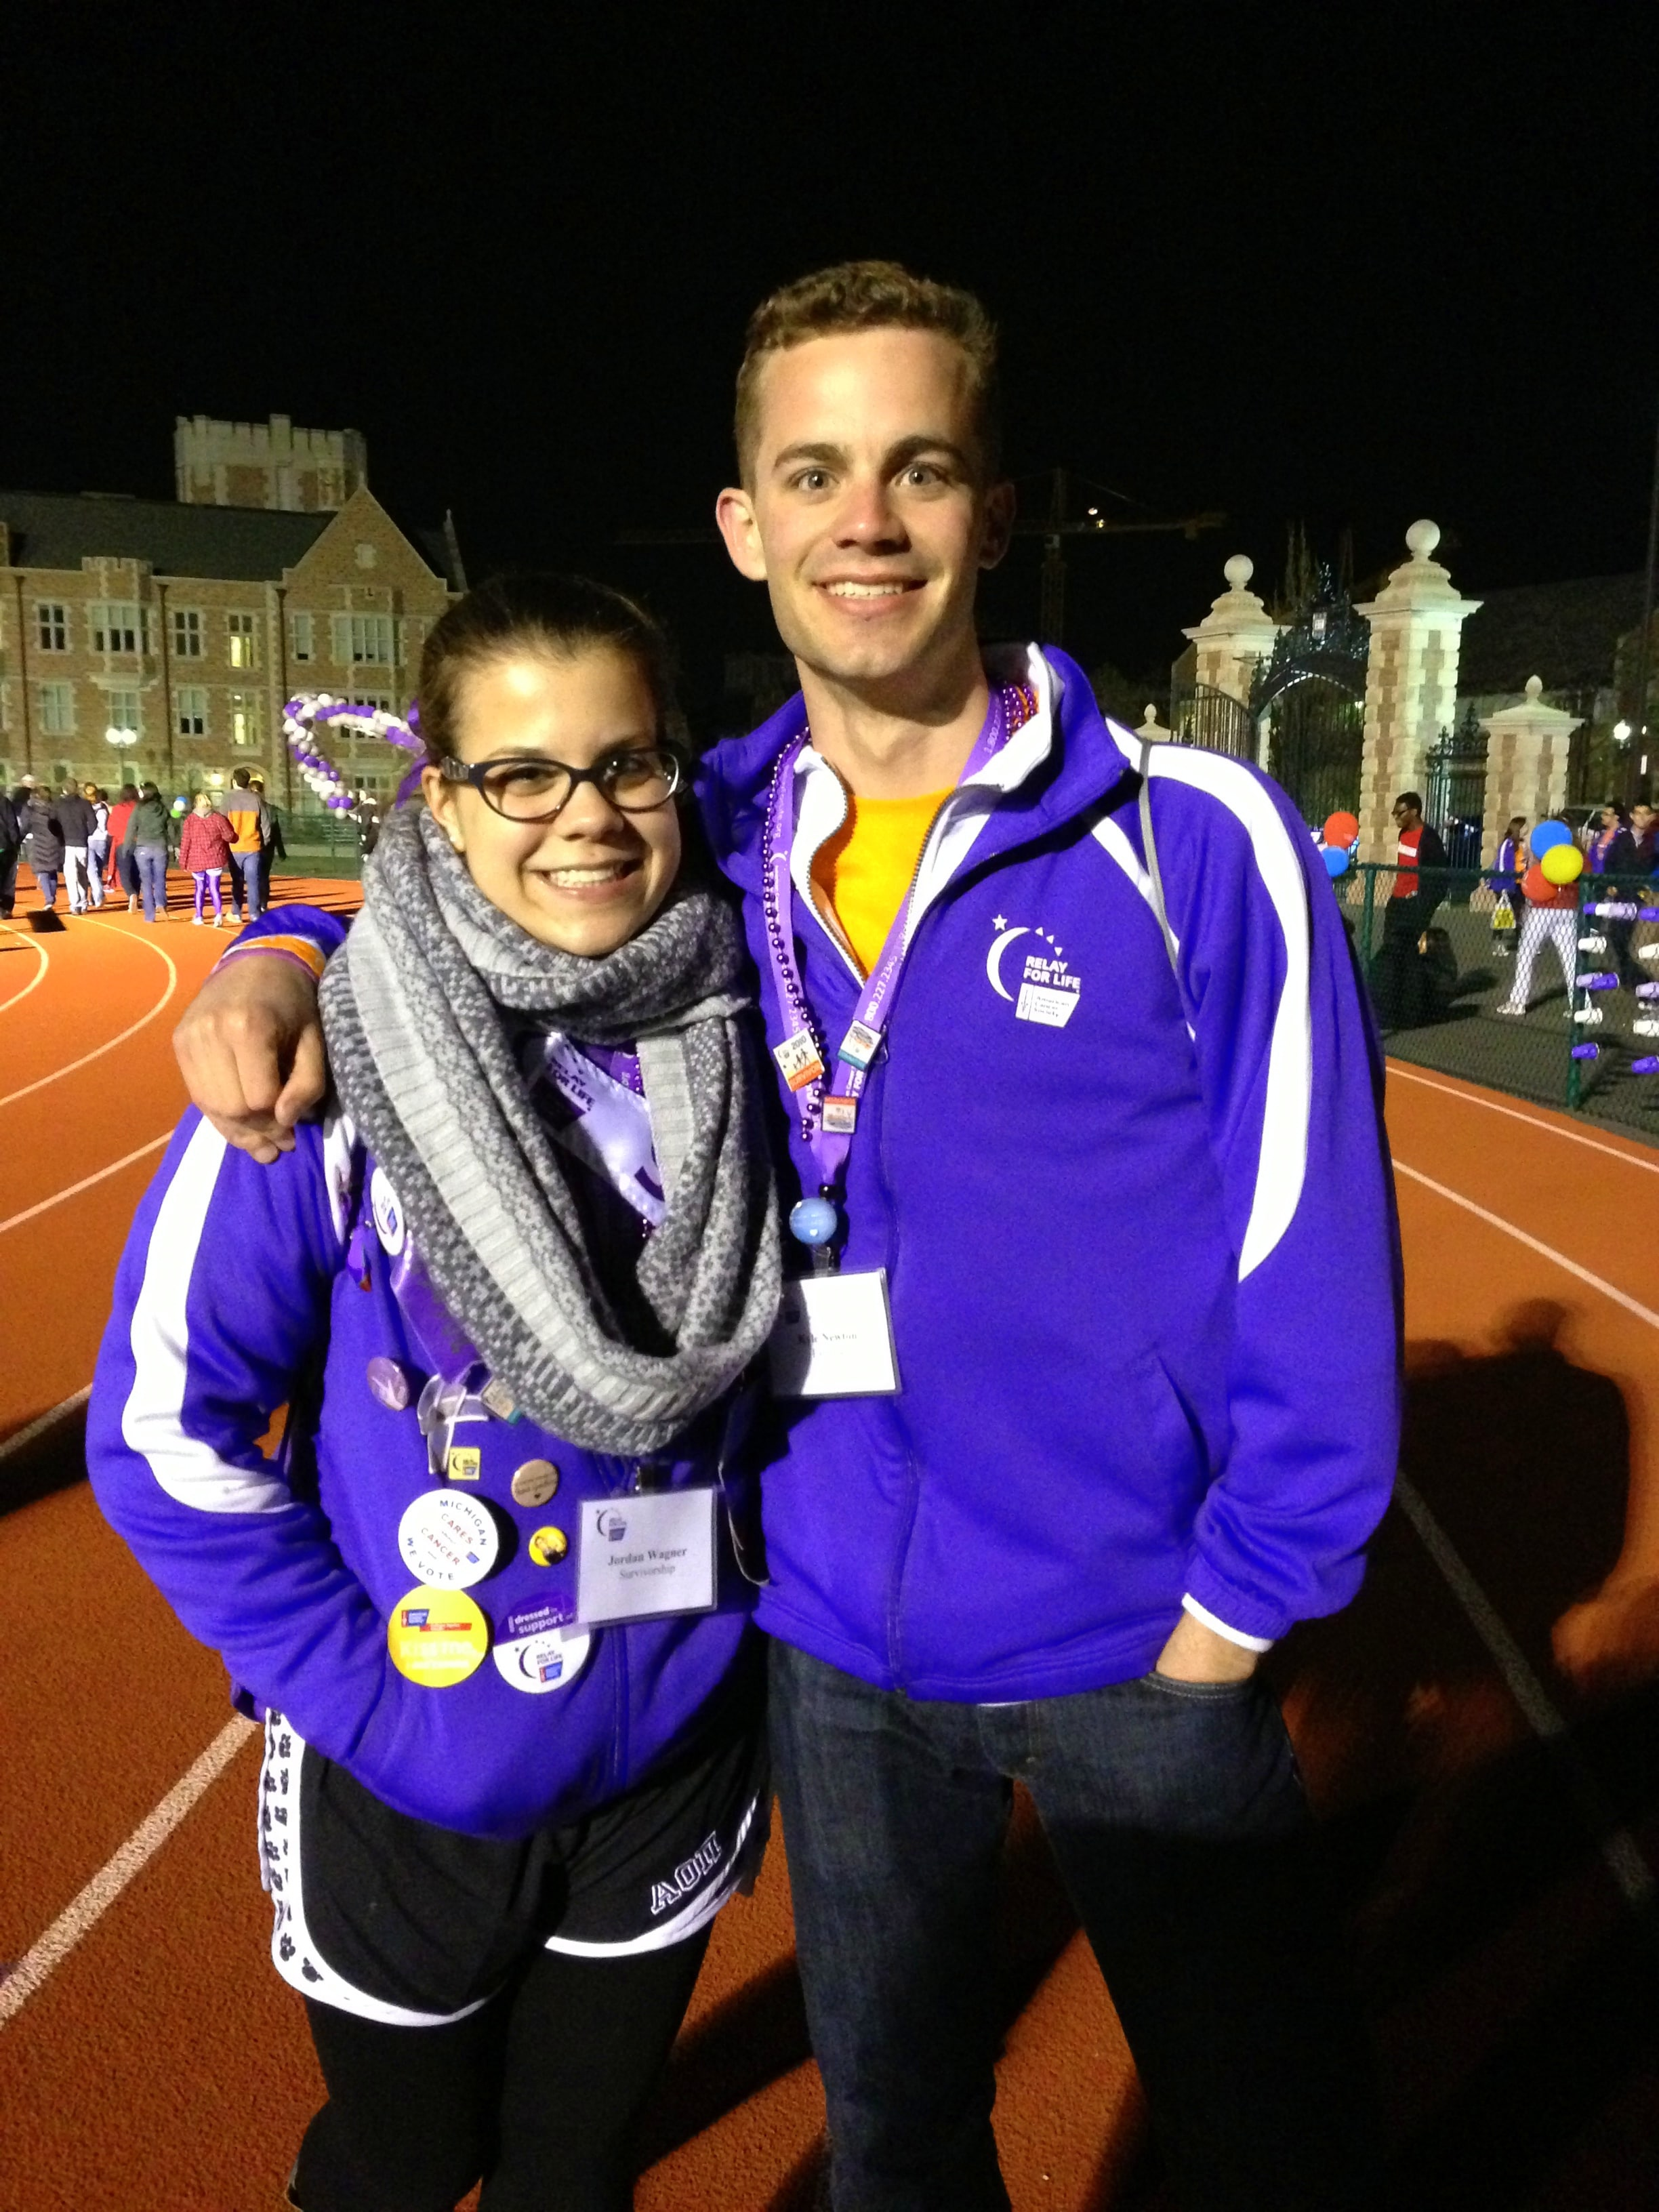 Relay For Life via Wayfaring With Wagner